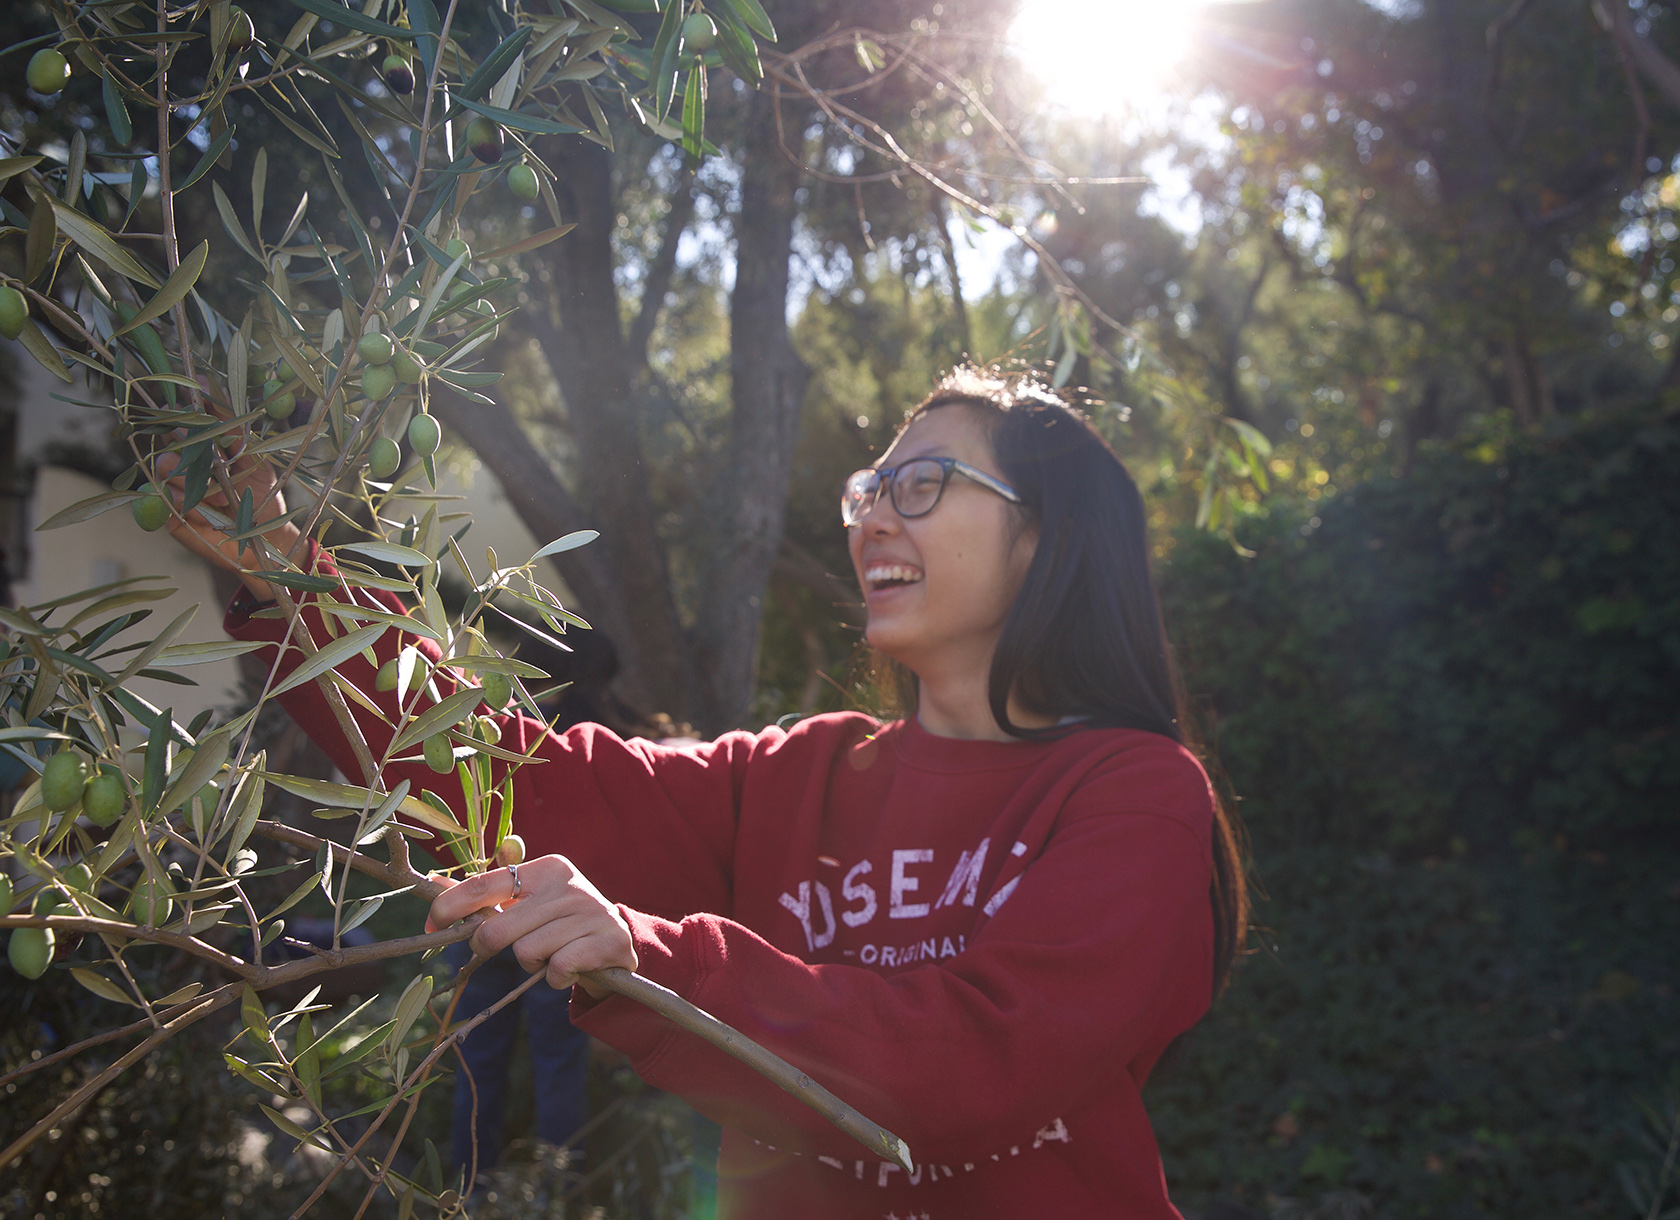 A young woman smiling while picking olives from an olive tree.